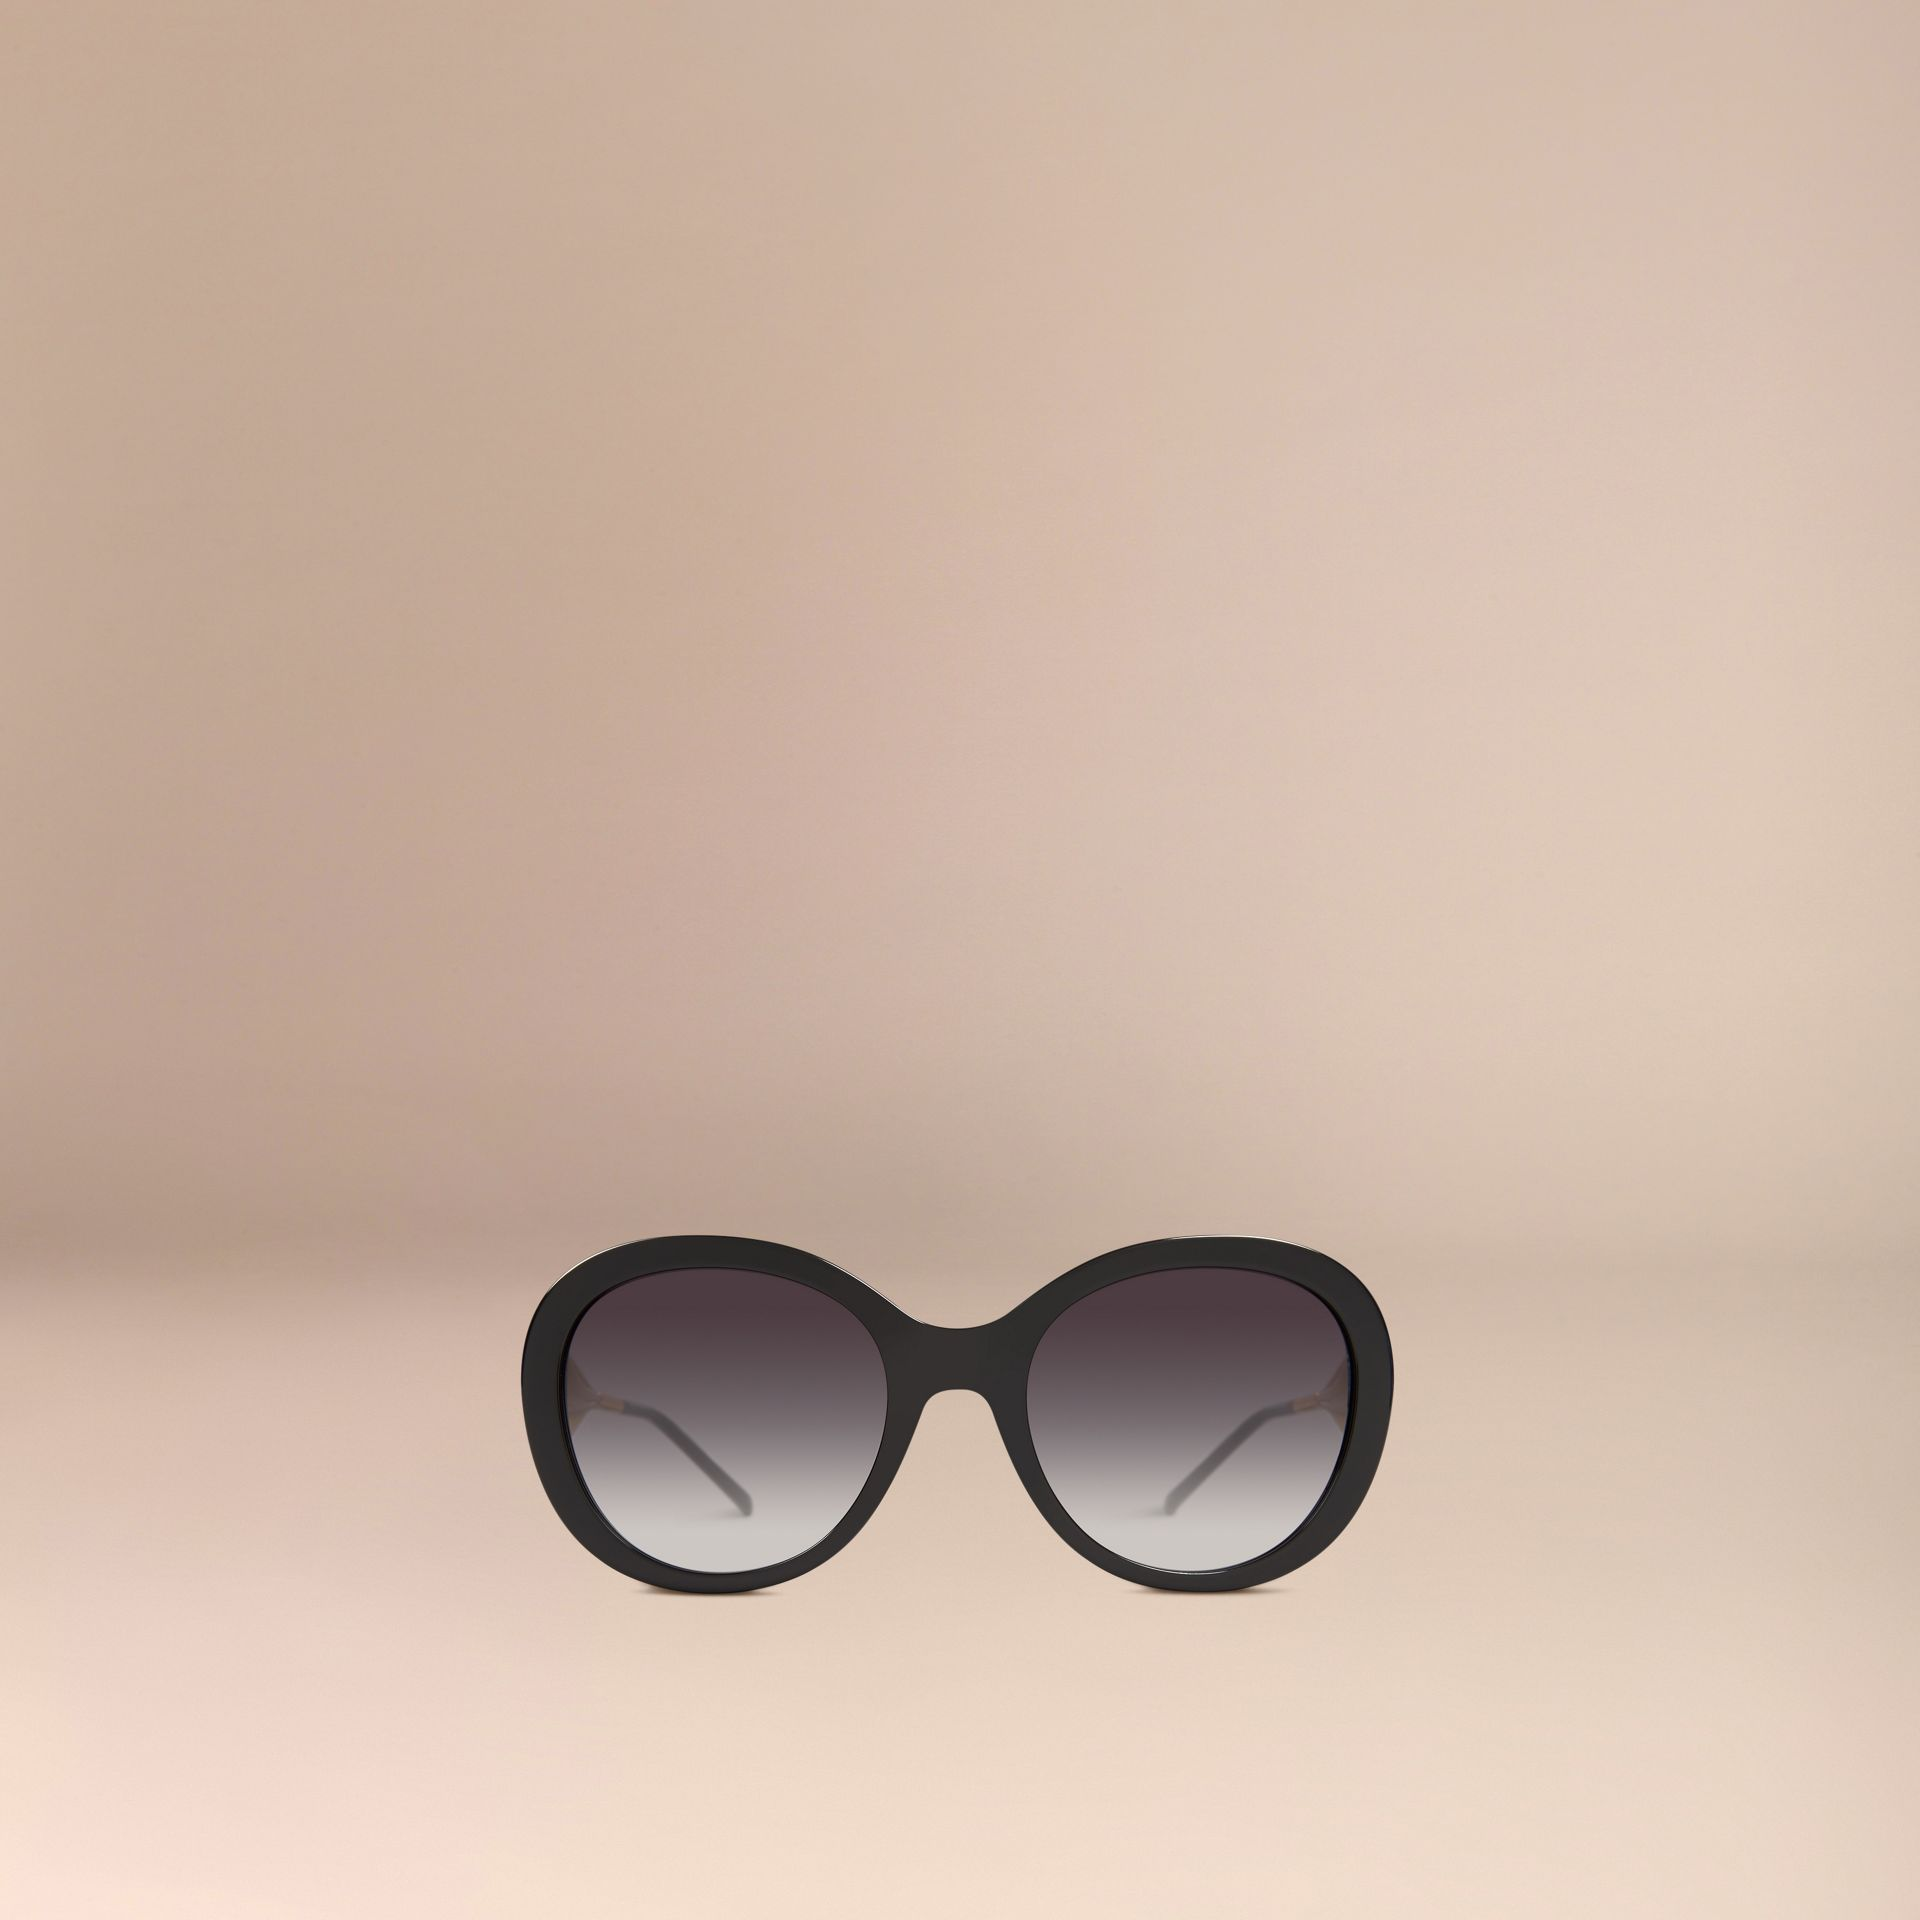 Gabardine Collection Oversize Round Frame Sunglasses in Black - Women | Burberry Hong Kong - gallery image 3